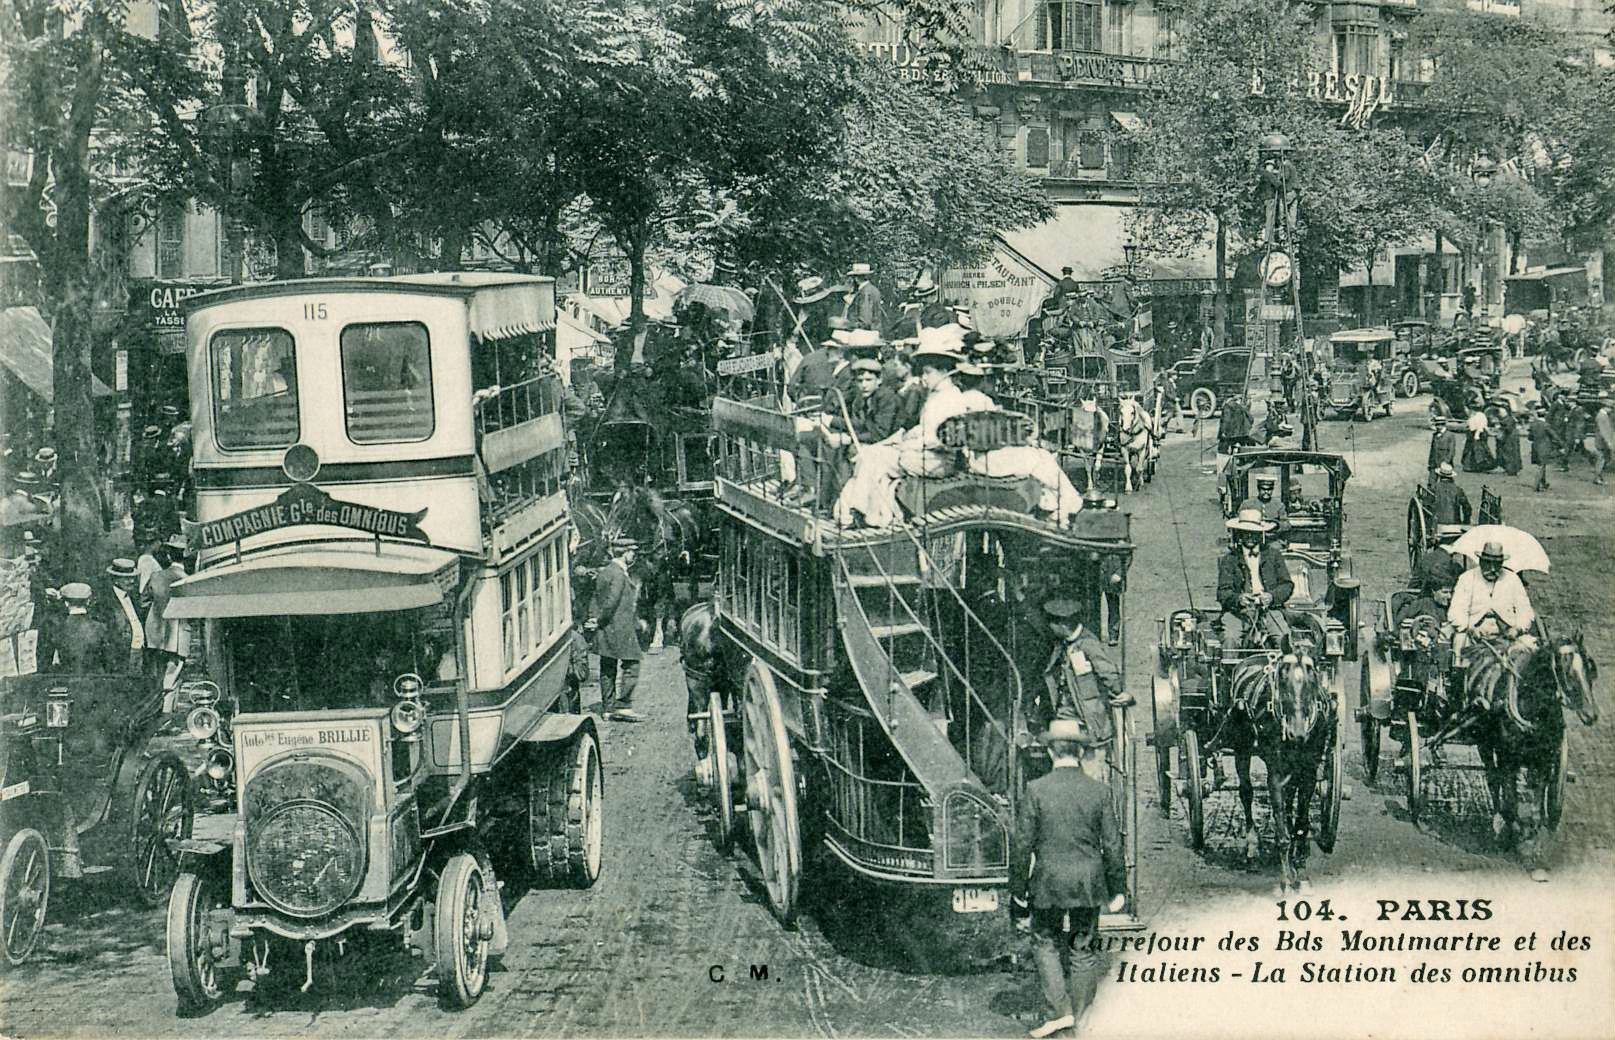 Omnibus station at the crossroads of Montmartre and Italian Boulevards, Paris, France